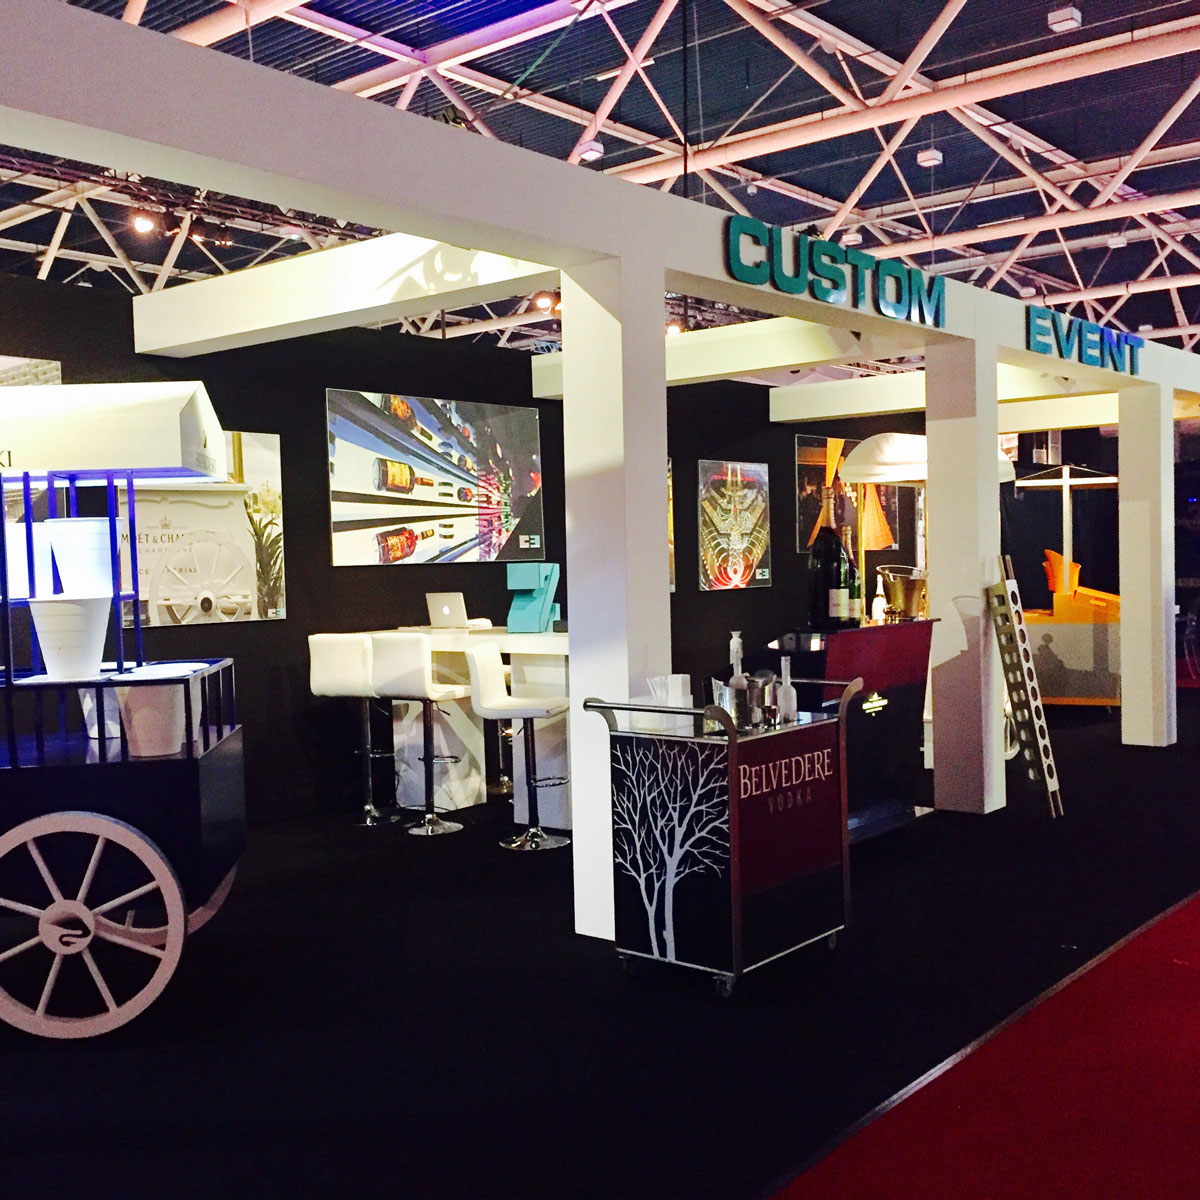 Custom Event standbouw interieur brand activation